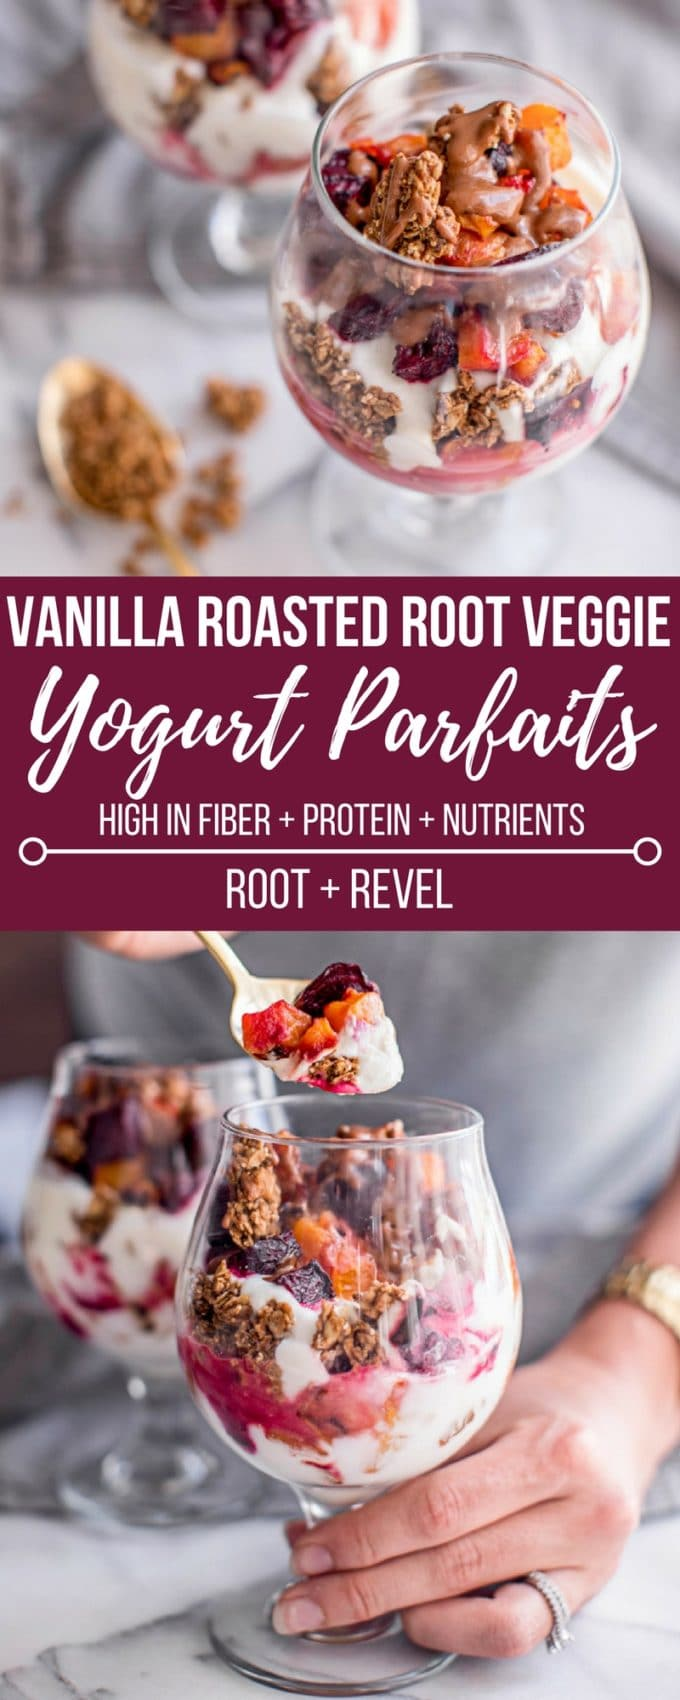 These yogurt breakfast bowls are made with vanilla roasted butternut squash + beets, served as yogurt parfaits with nut butter + granola. Low calorie, too!